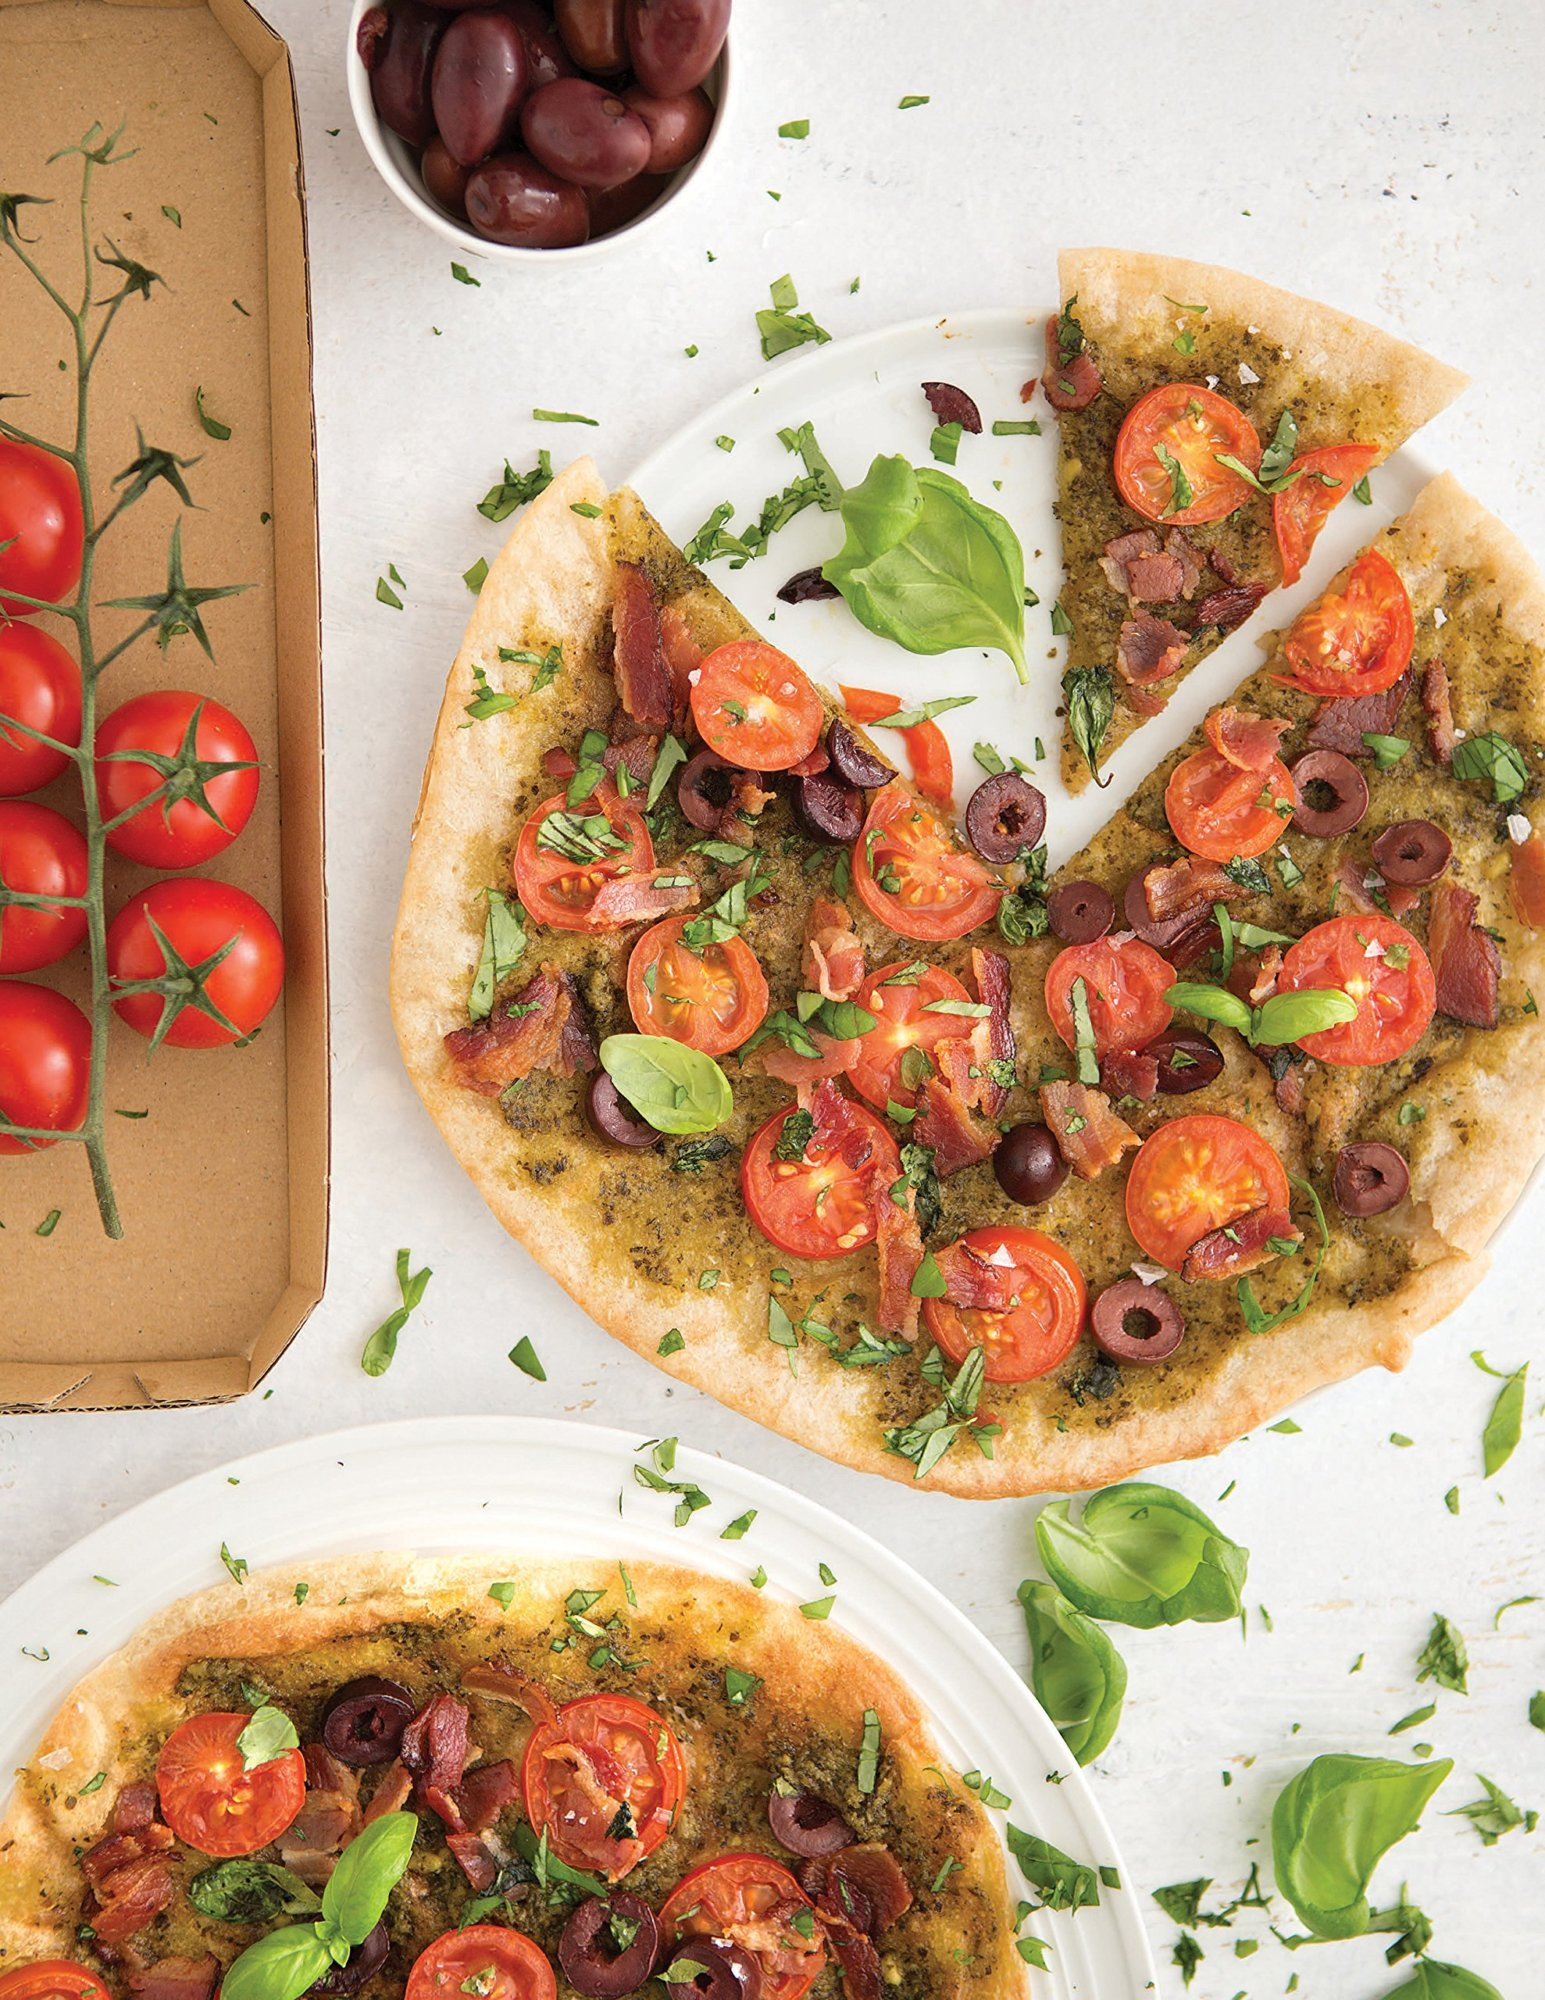 Digestive Health with Real Food - Cassava Paleo Pizza Recipe - Stockholm, Sweden